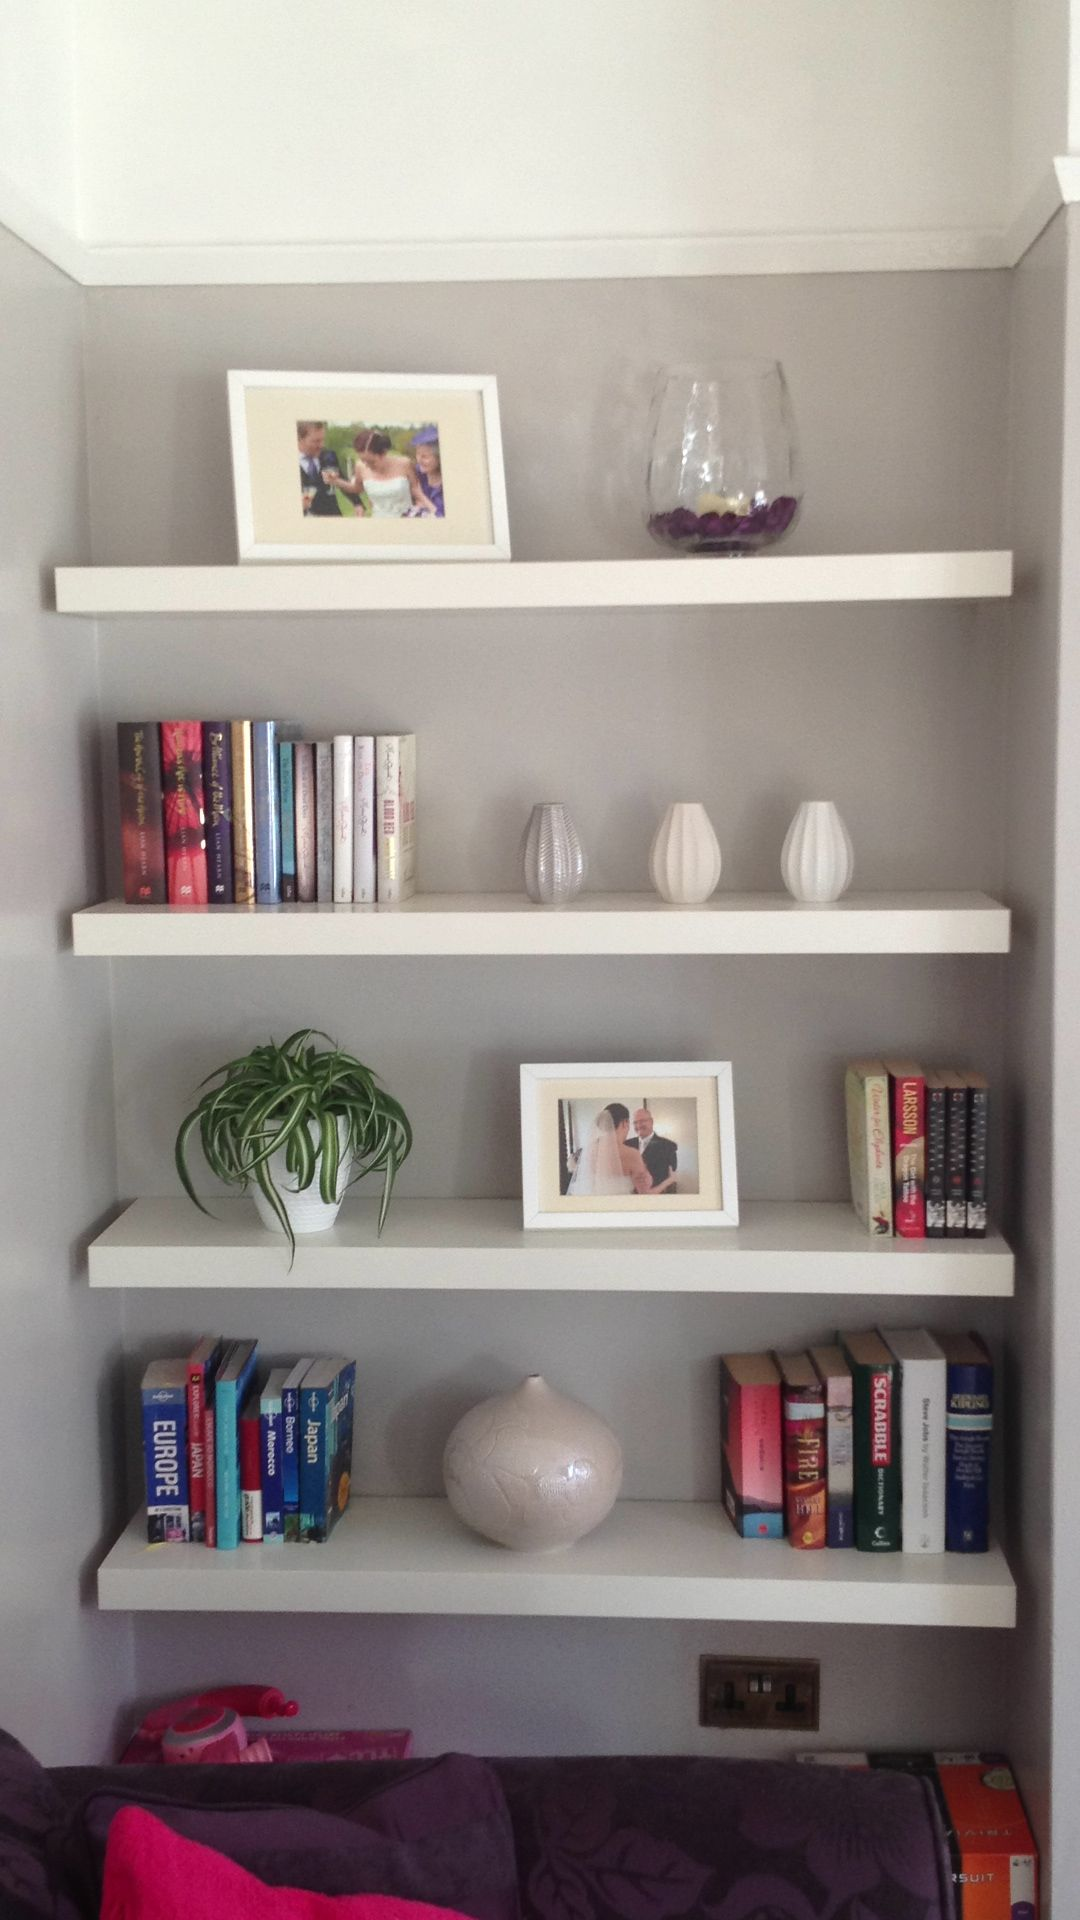 Alcove Floating Shelving In The Lounge Alcove Shelving